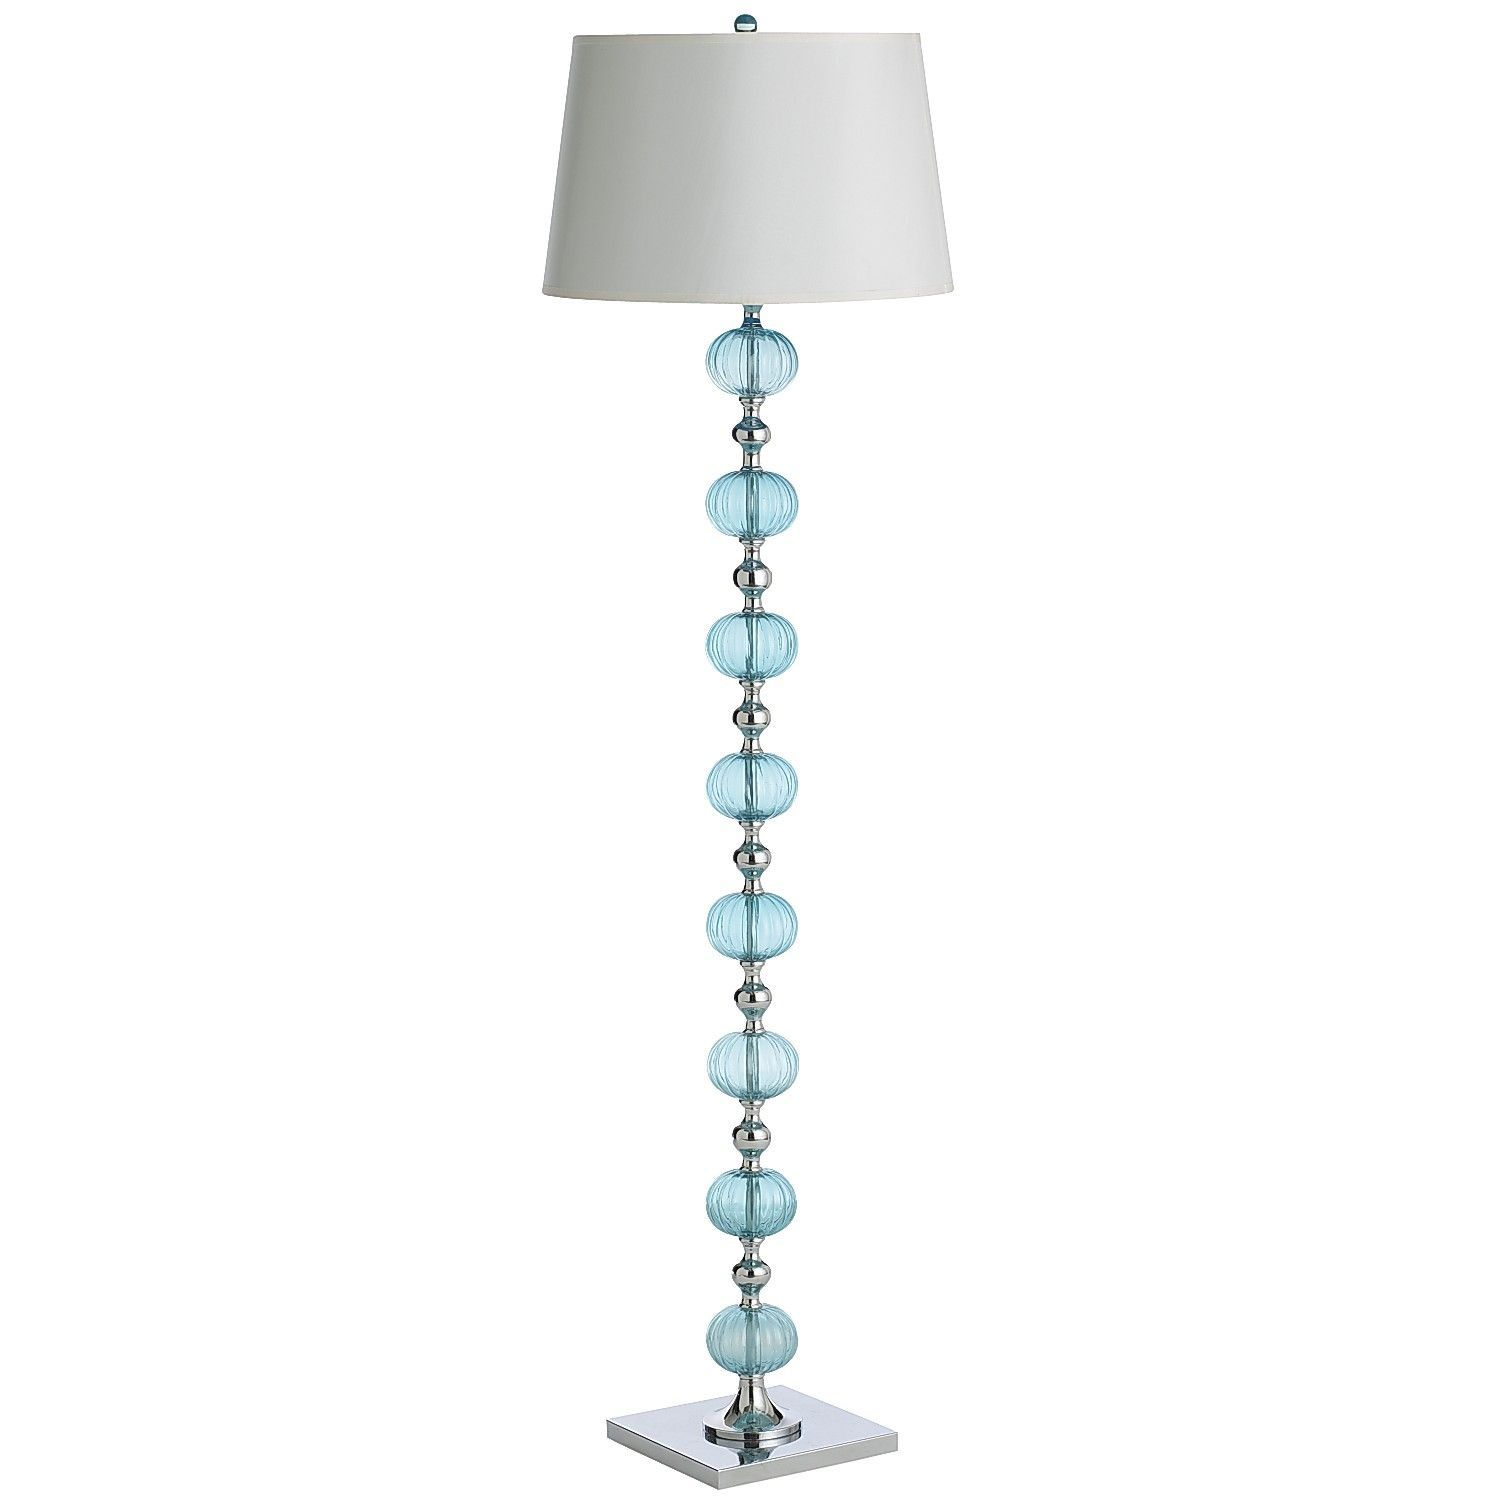 Pier 1 Floor Lamps Magnificent Aqua Glass Floor Lamp  Pier1 Us  Furnish  Pinterest  Aqua Glass Inspiration Design